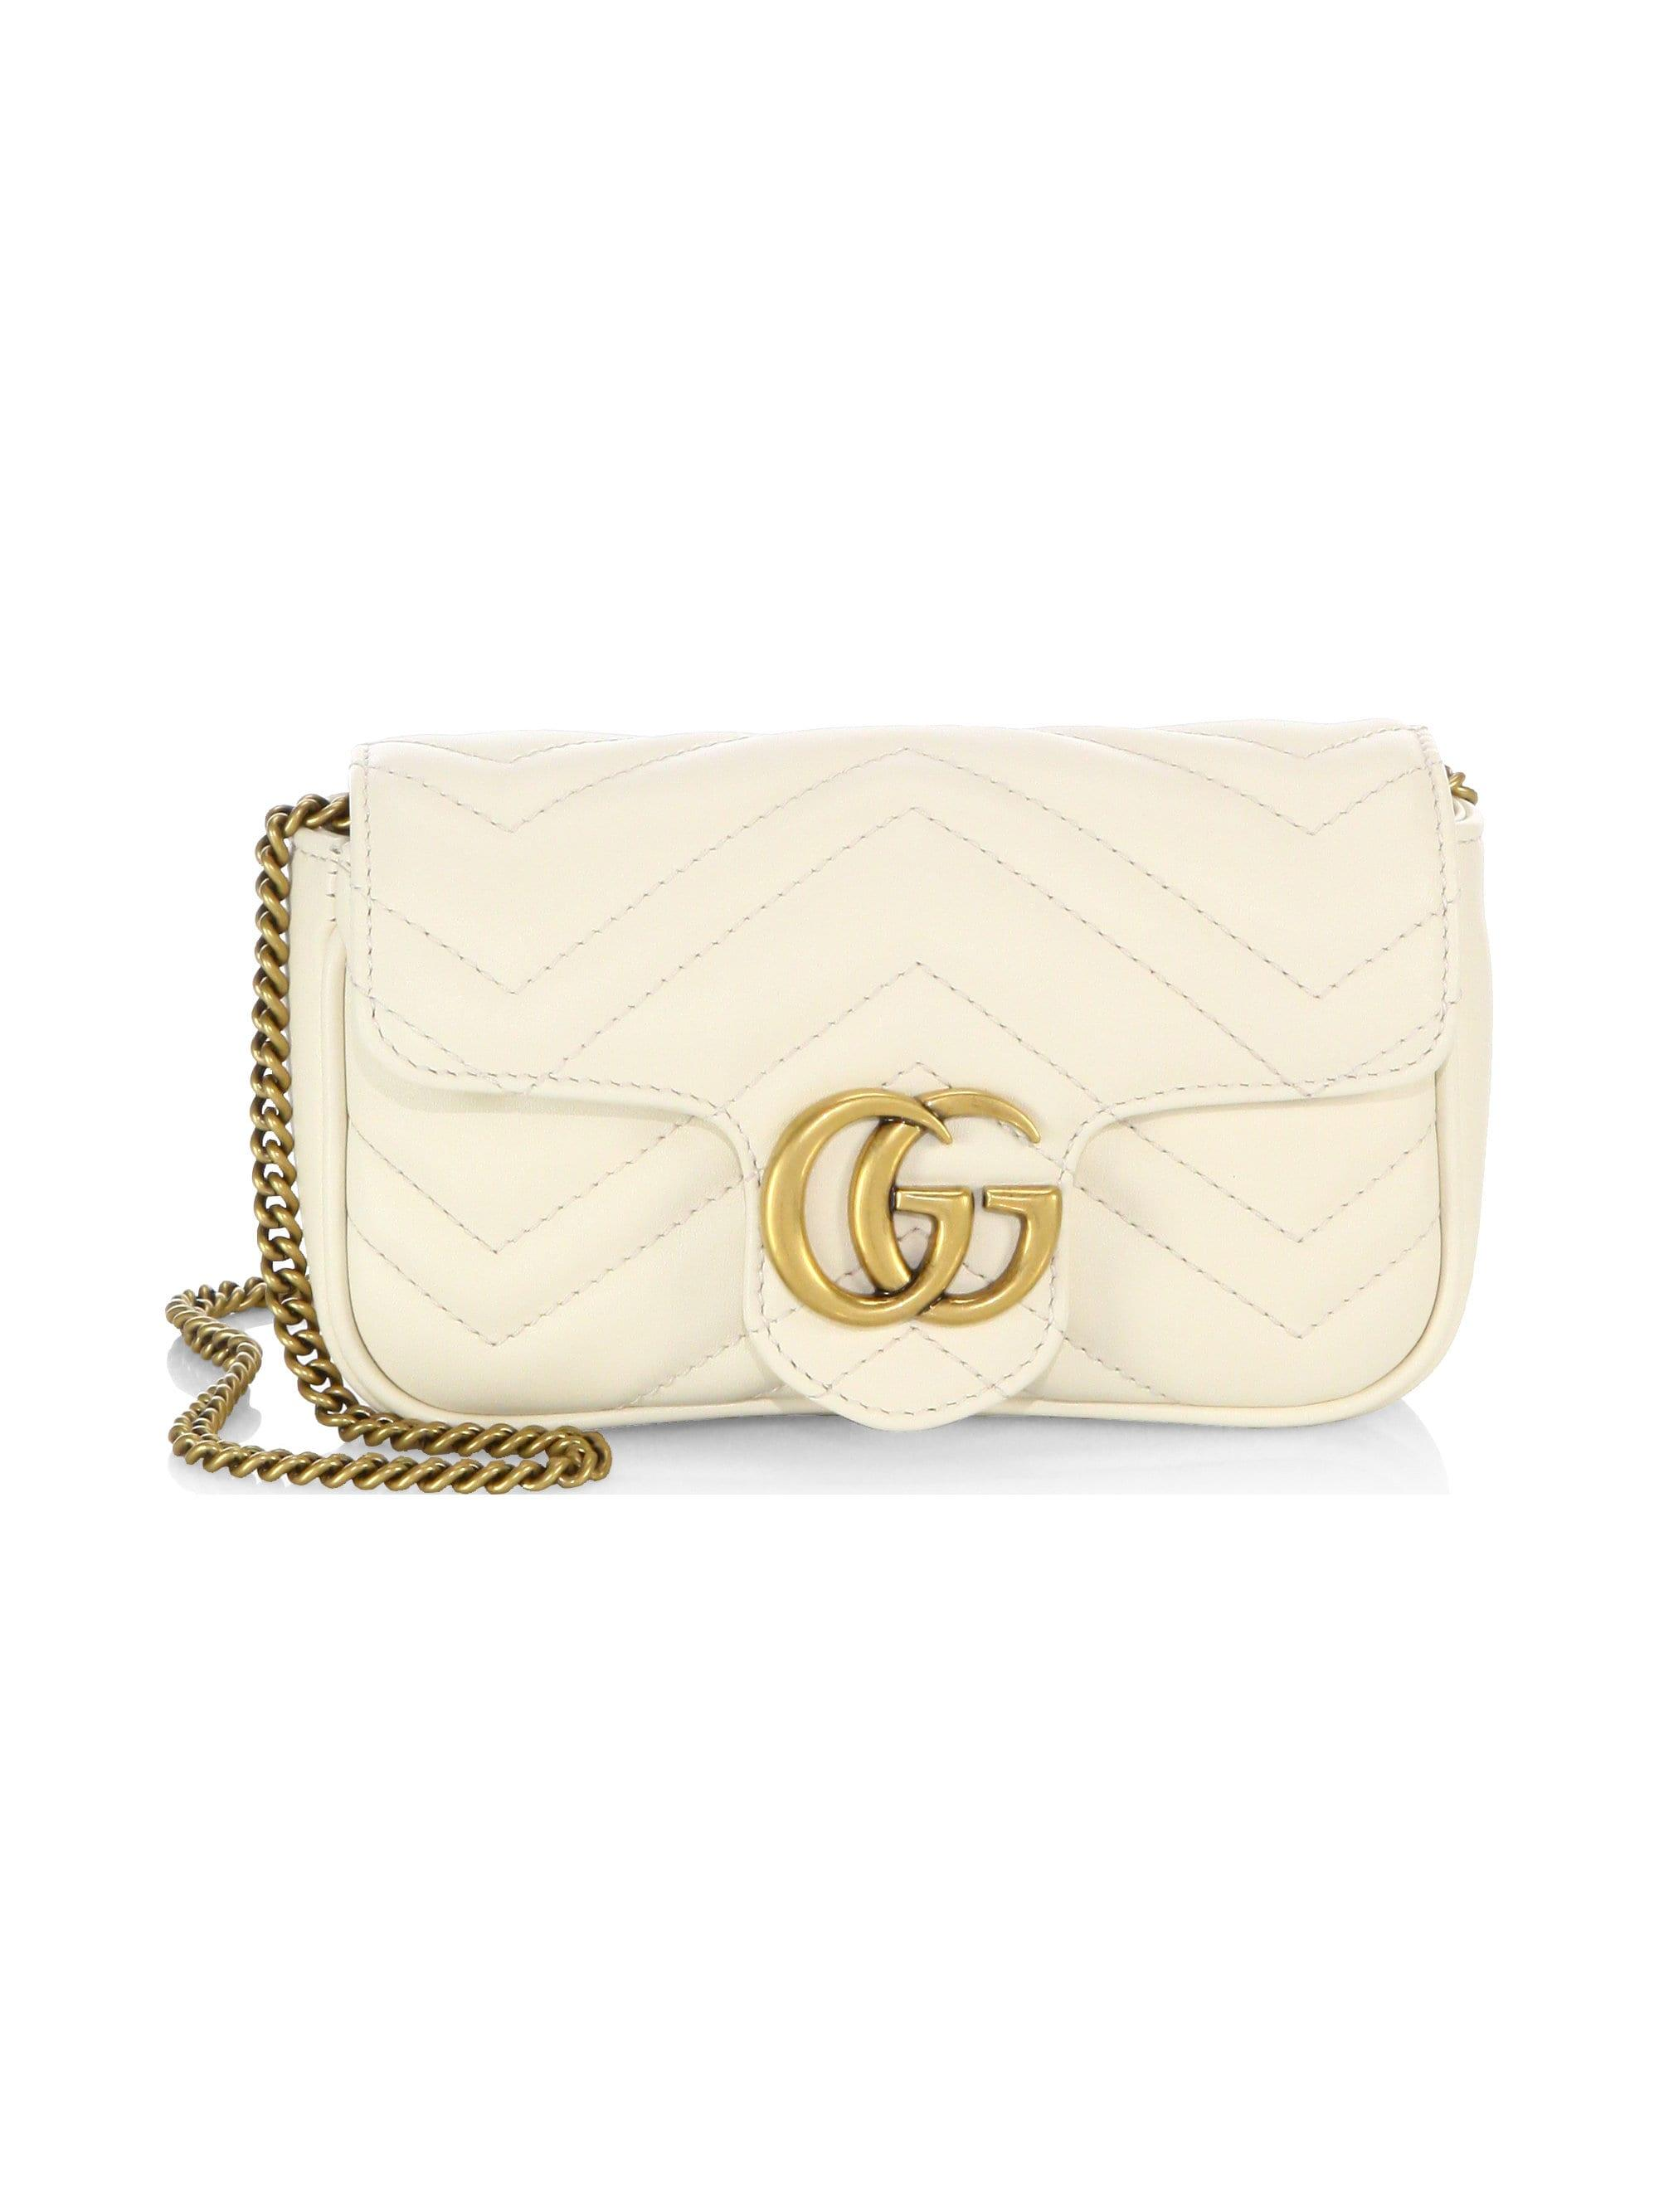 8b163c63c52 Lyst - Gucci Gg Marmont Matelasse Leather Mini Chain Shoulder Bag in ...